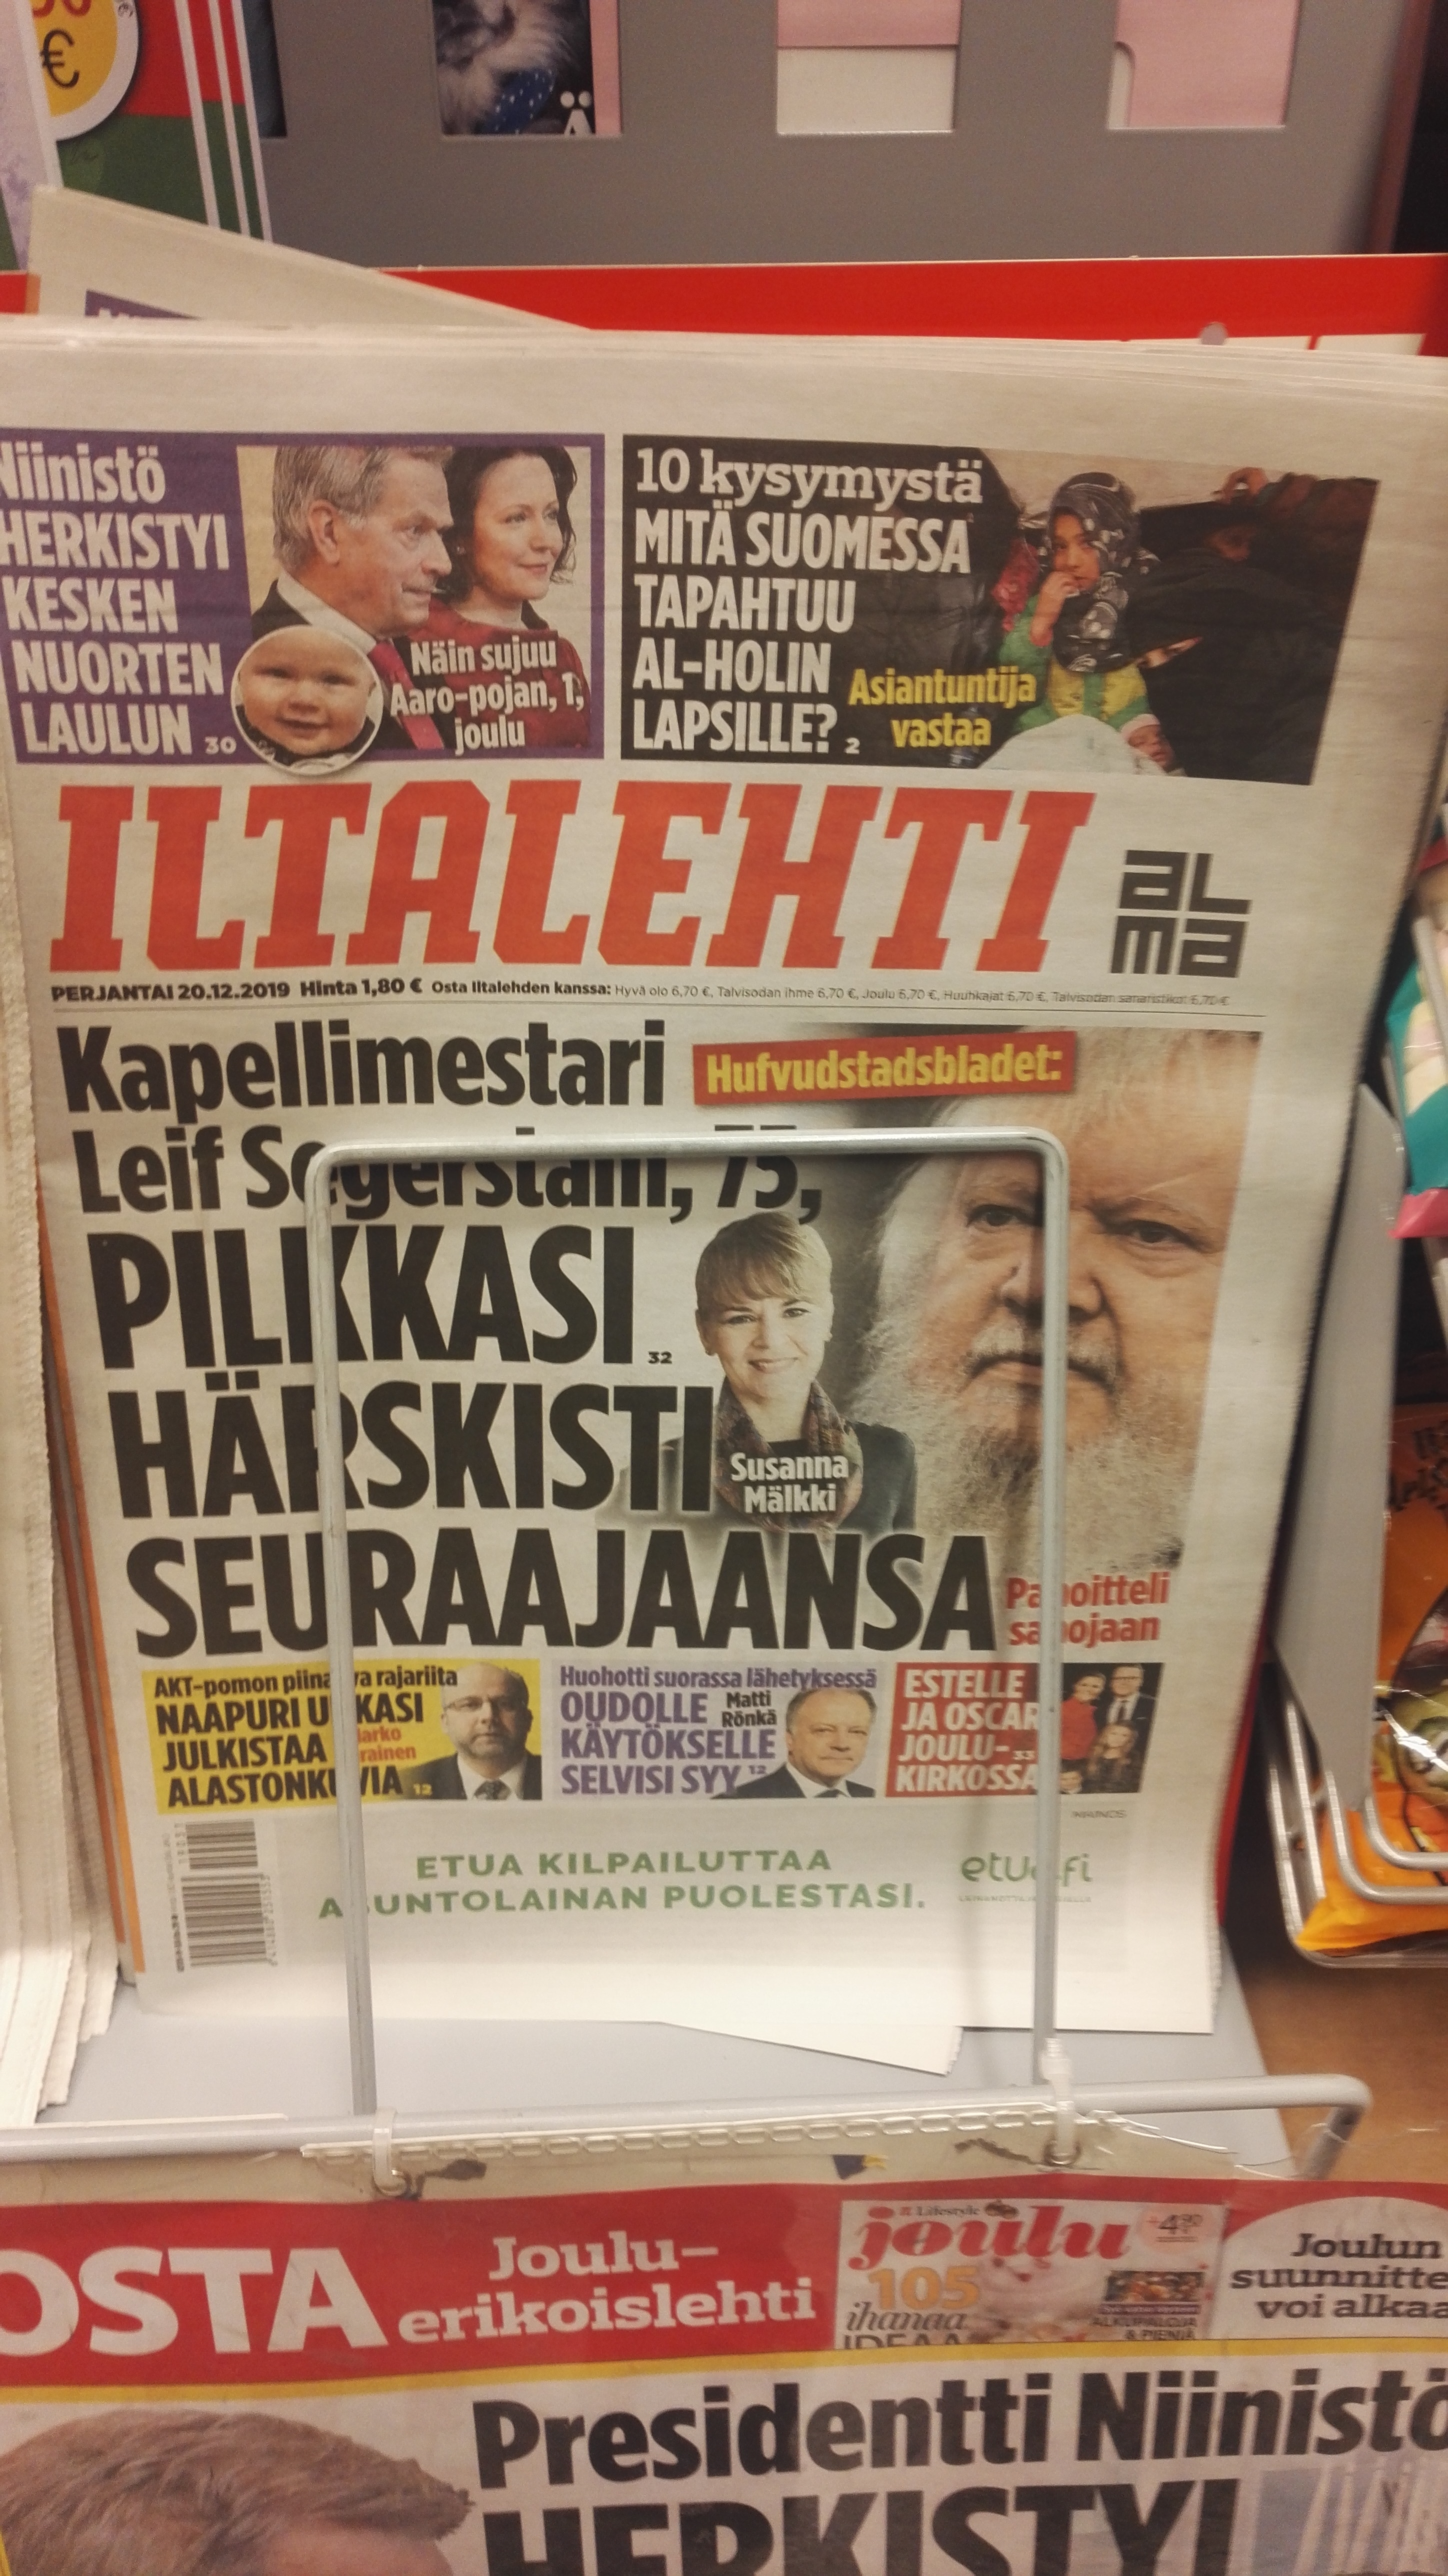 Conductor lacks balls hits Finland's front page